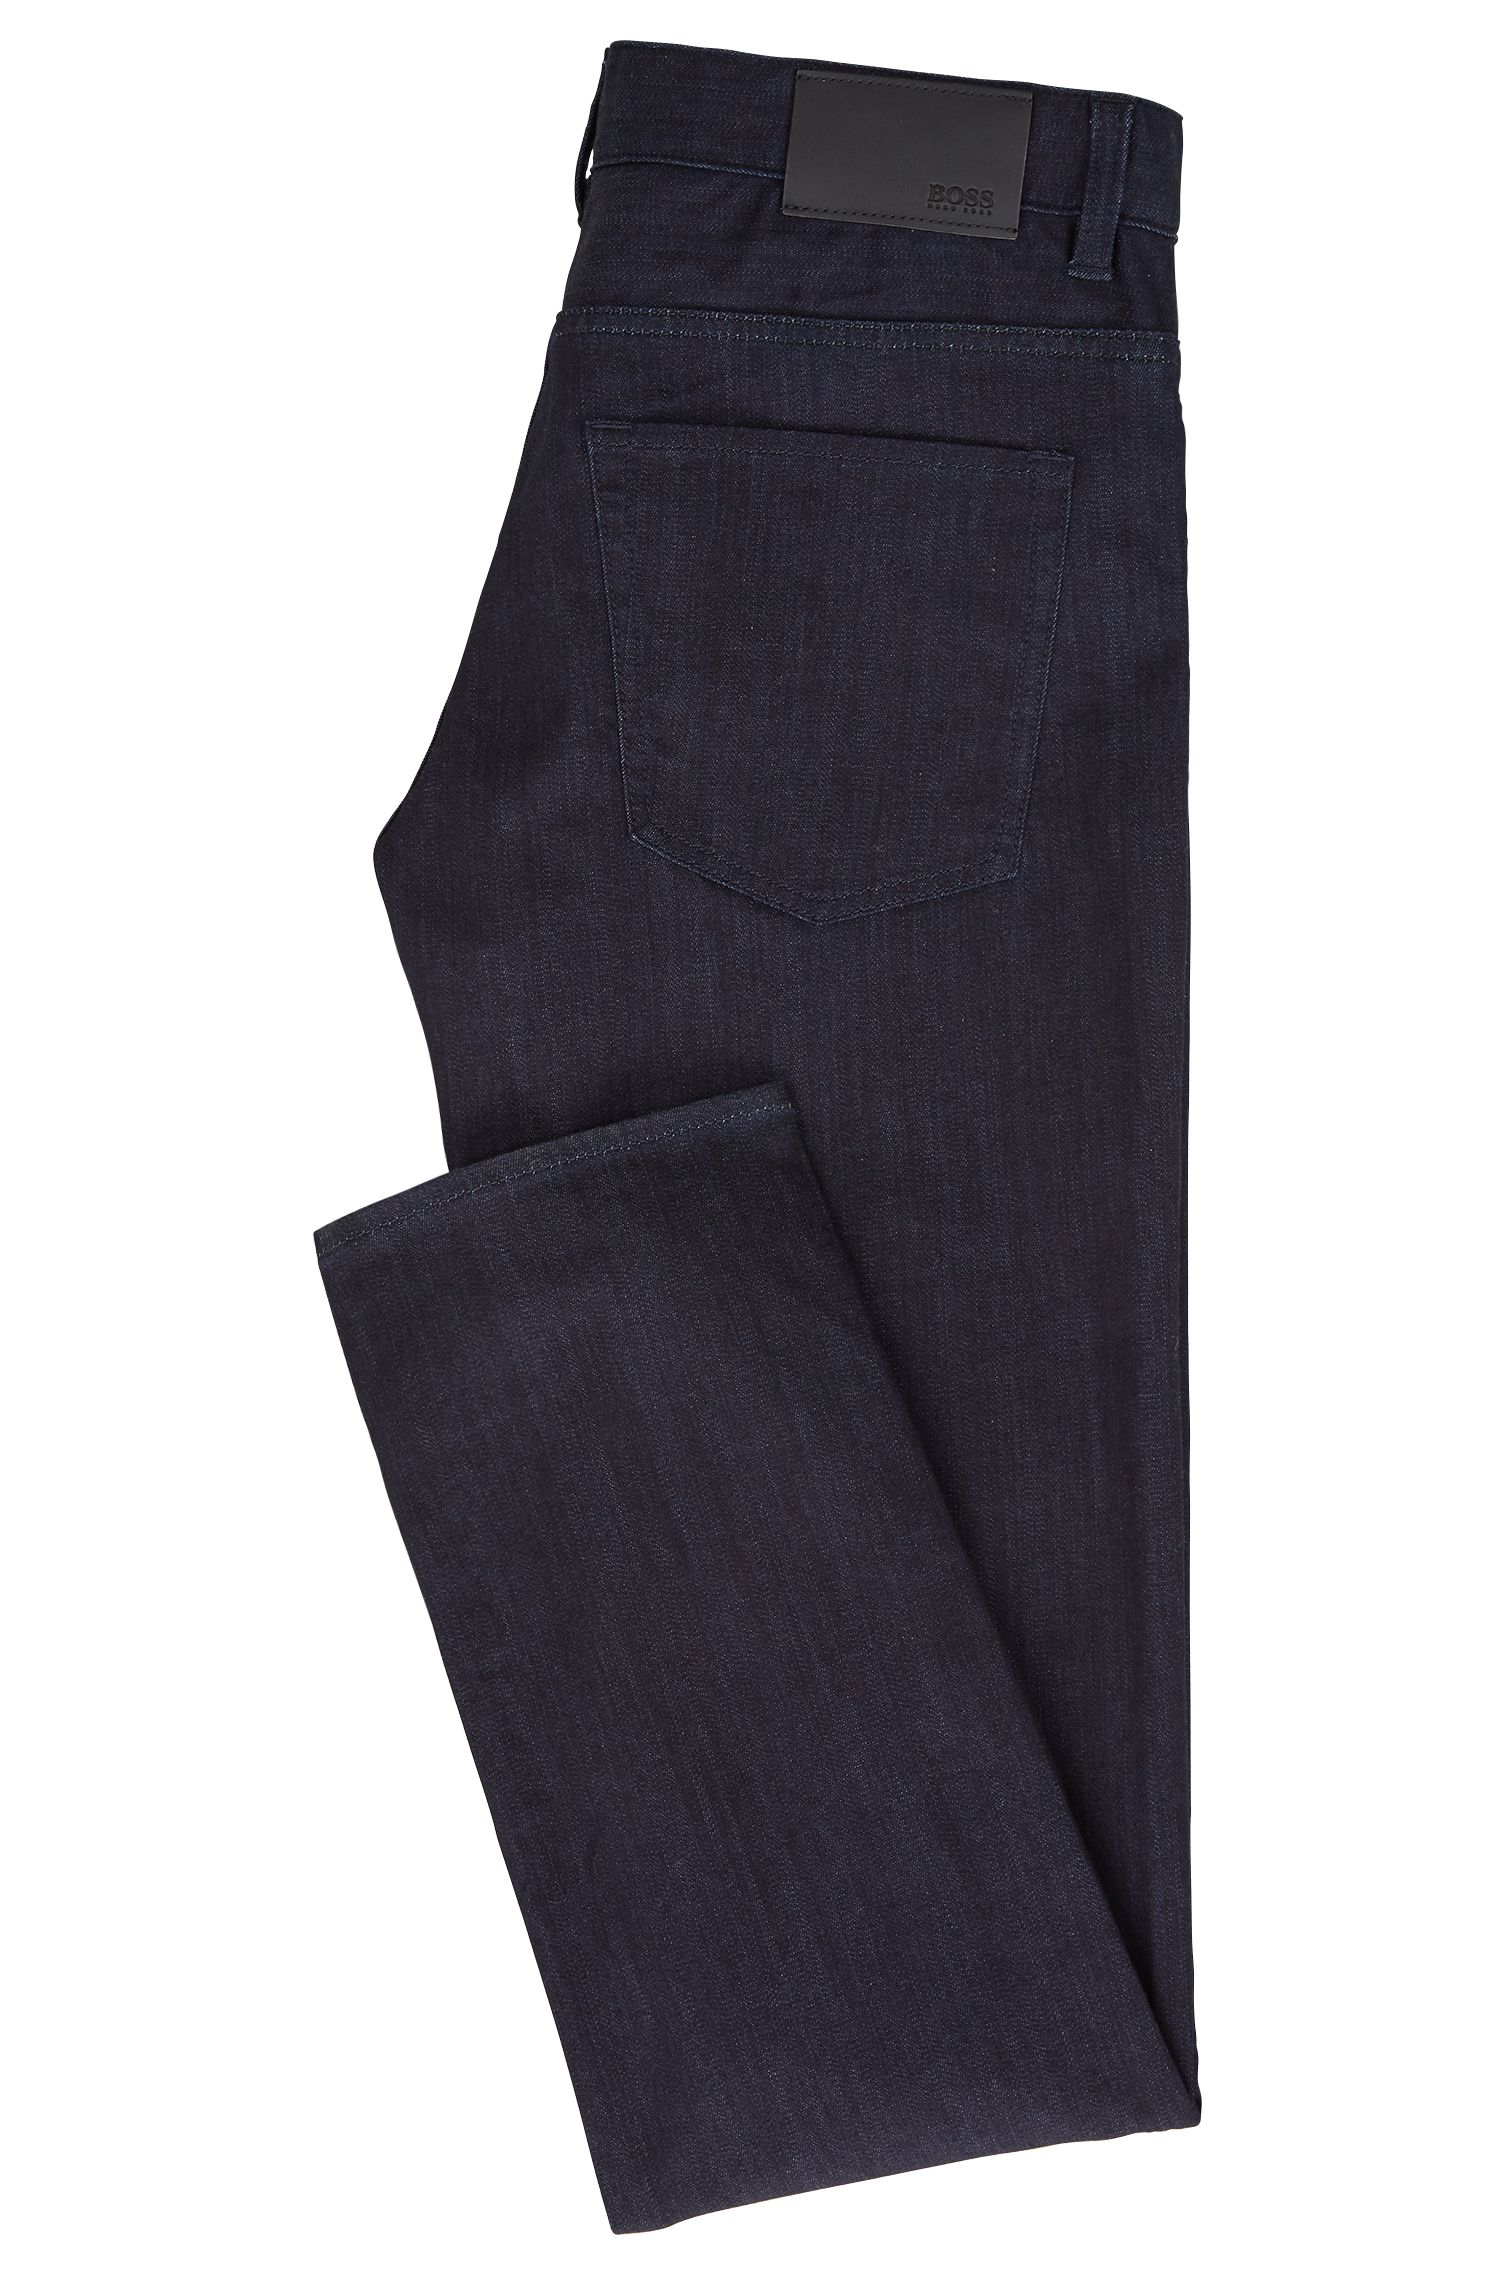 Hugo Boss - Slim-fit jeans in rinse-washed stretch denim - 3